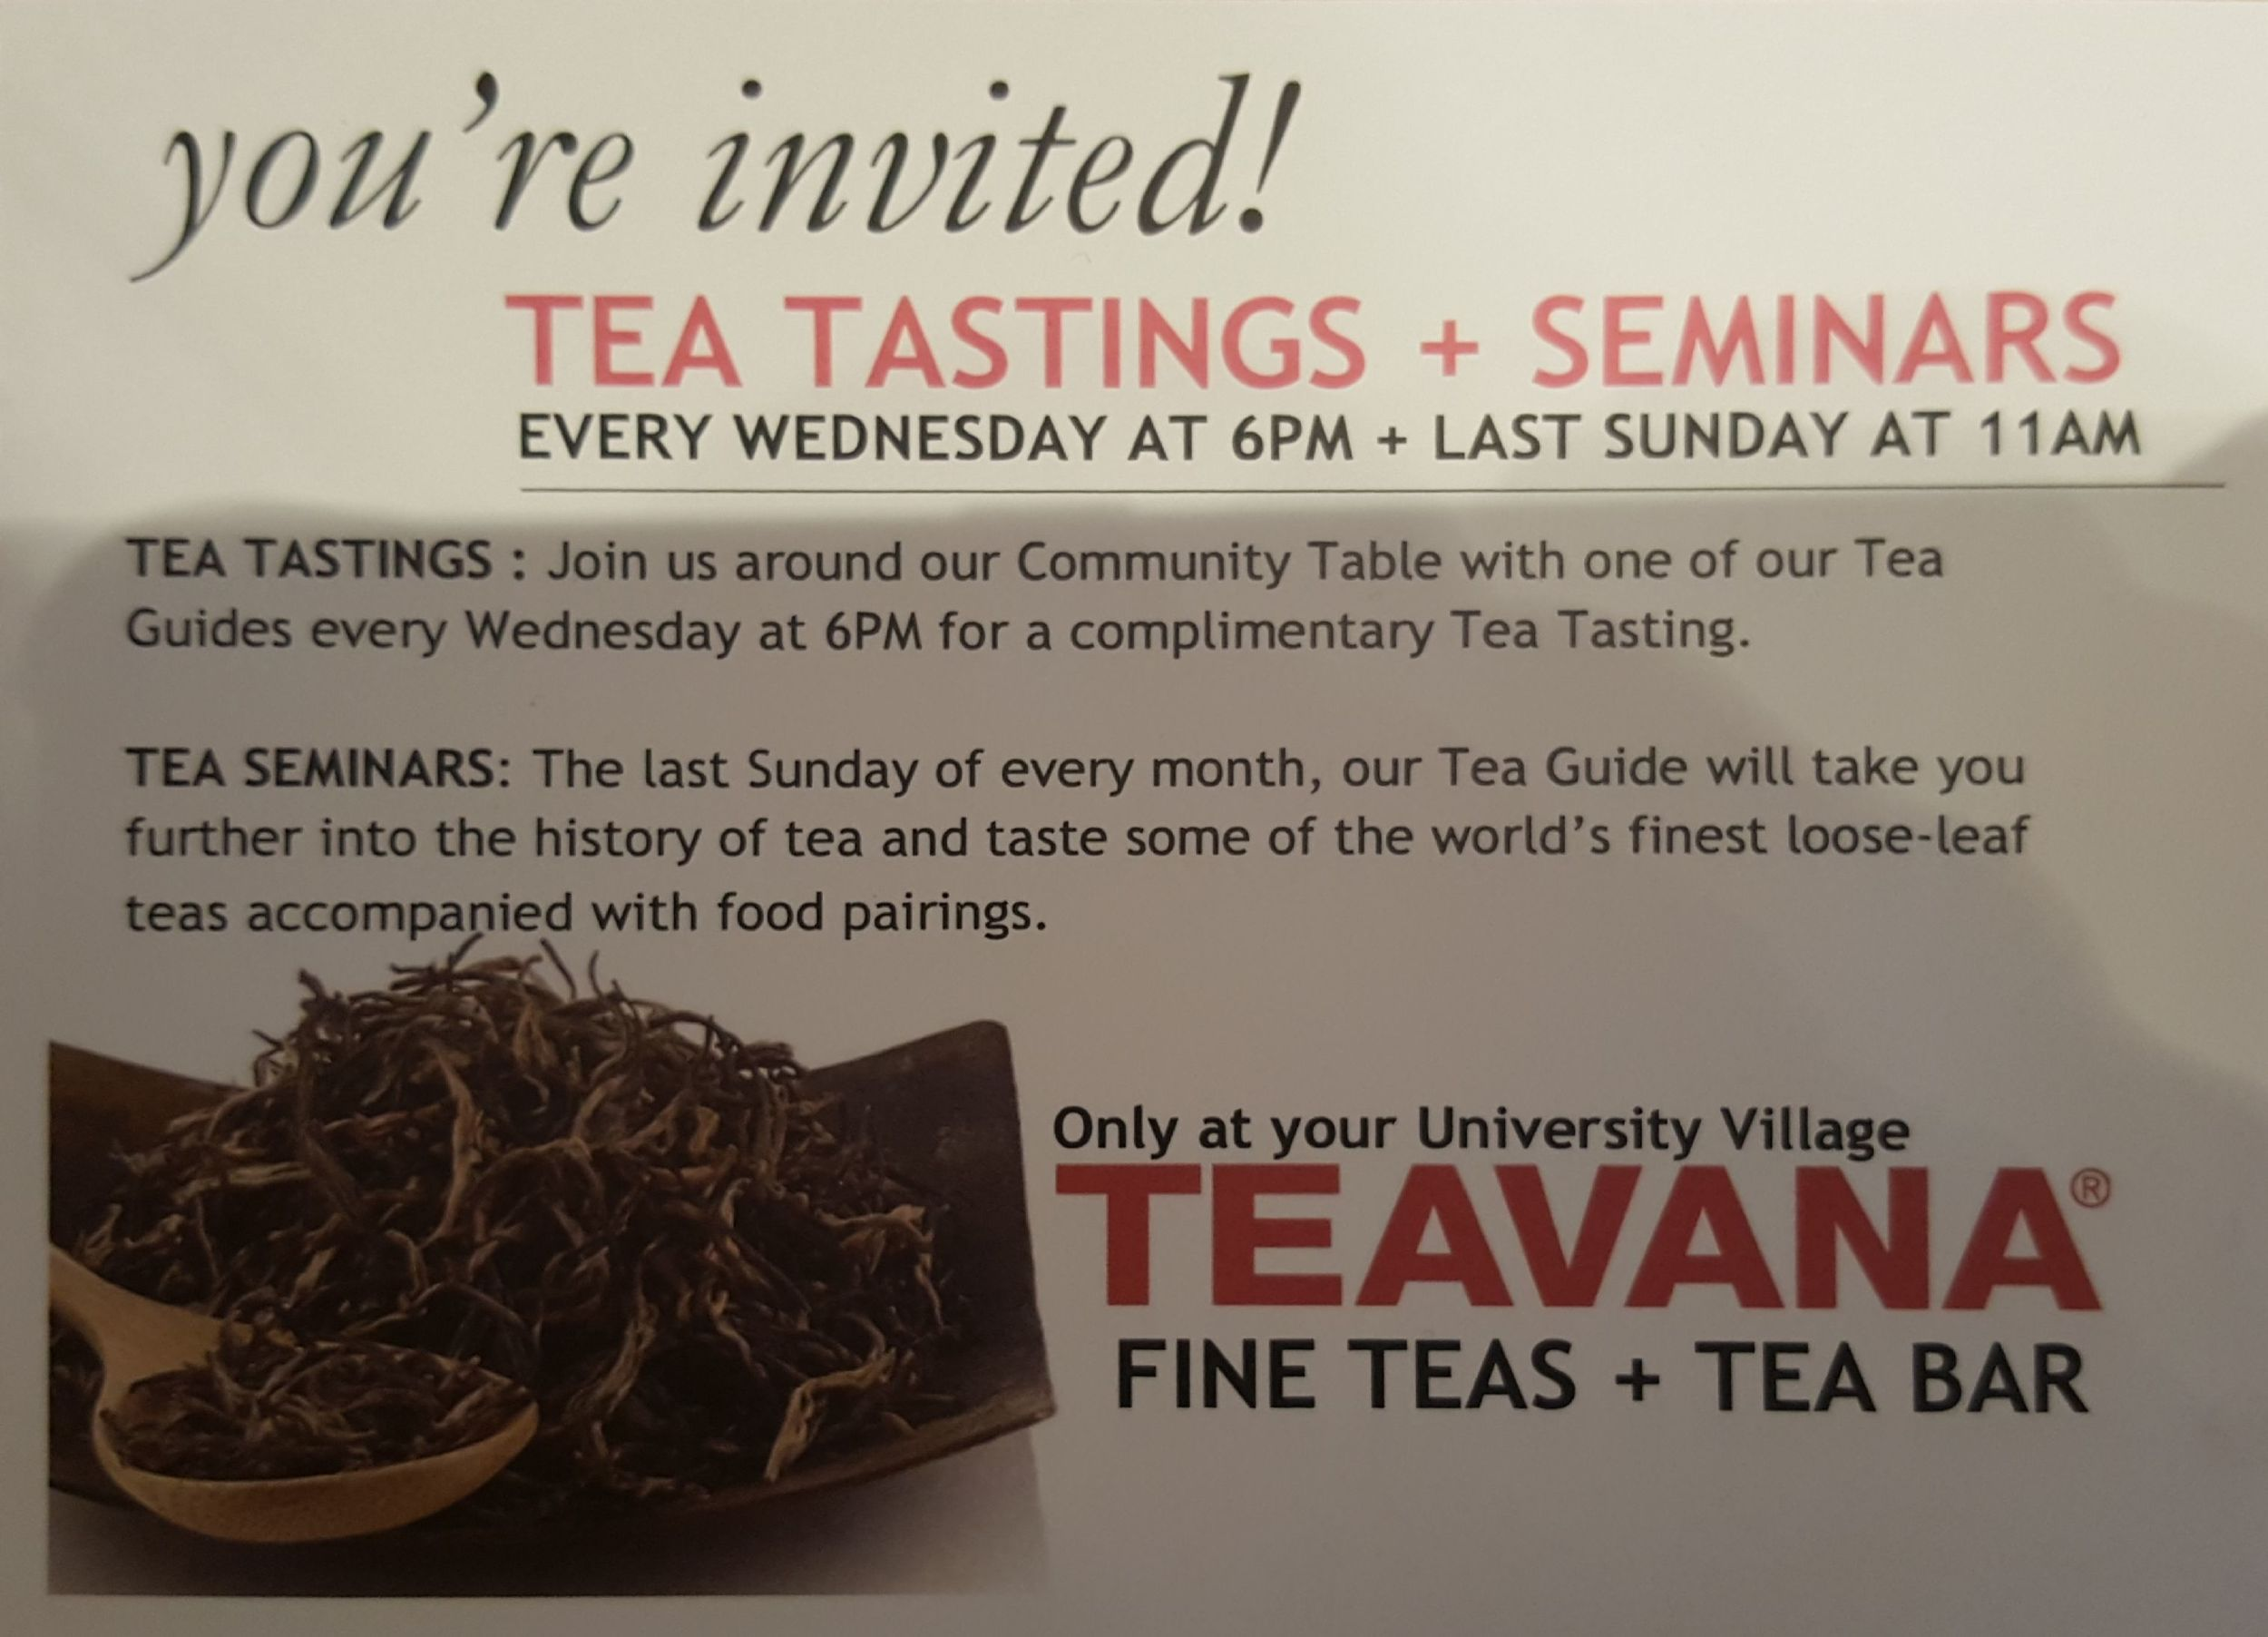 New Doc 86_1 Tea Tasting - University Village Teaavana Tea Bar 14Feb16.jpg